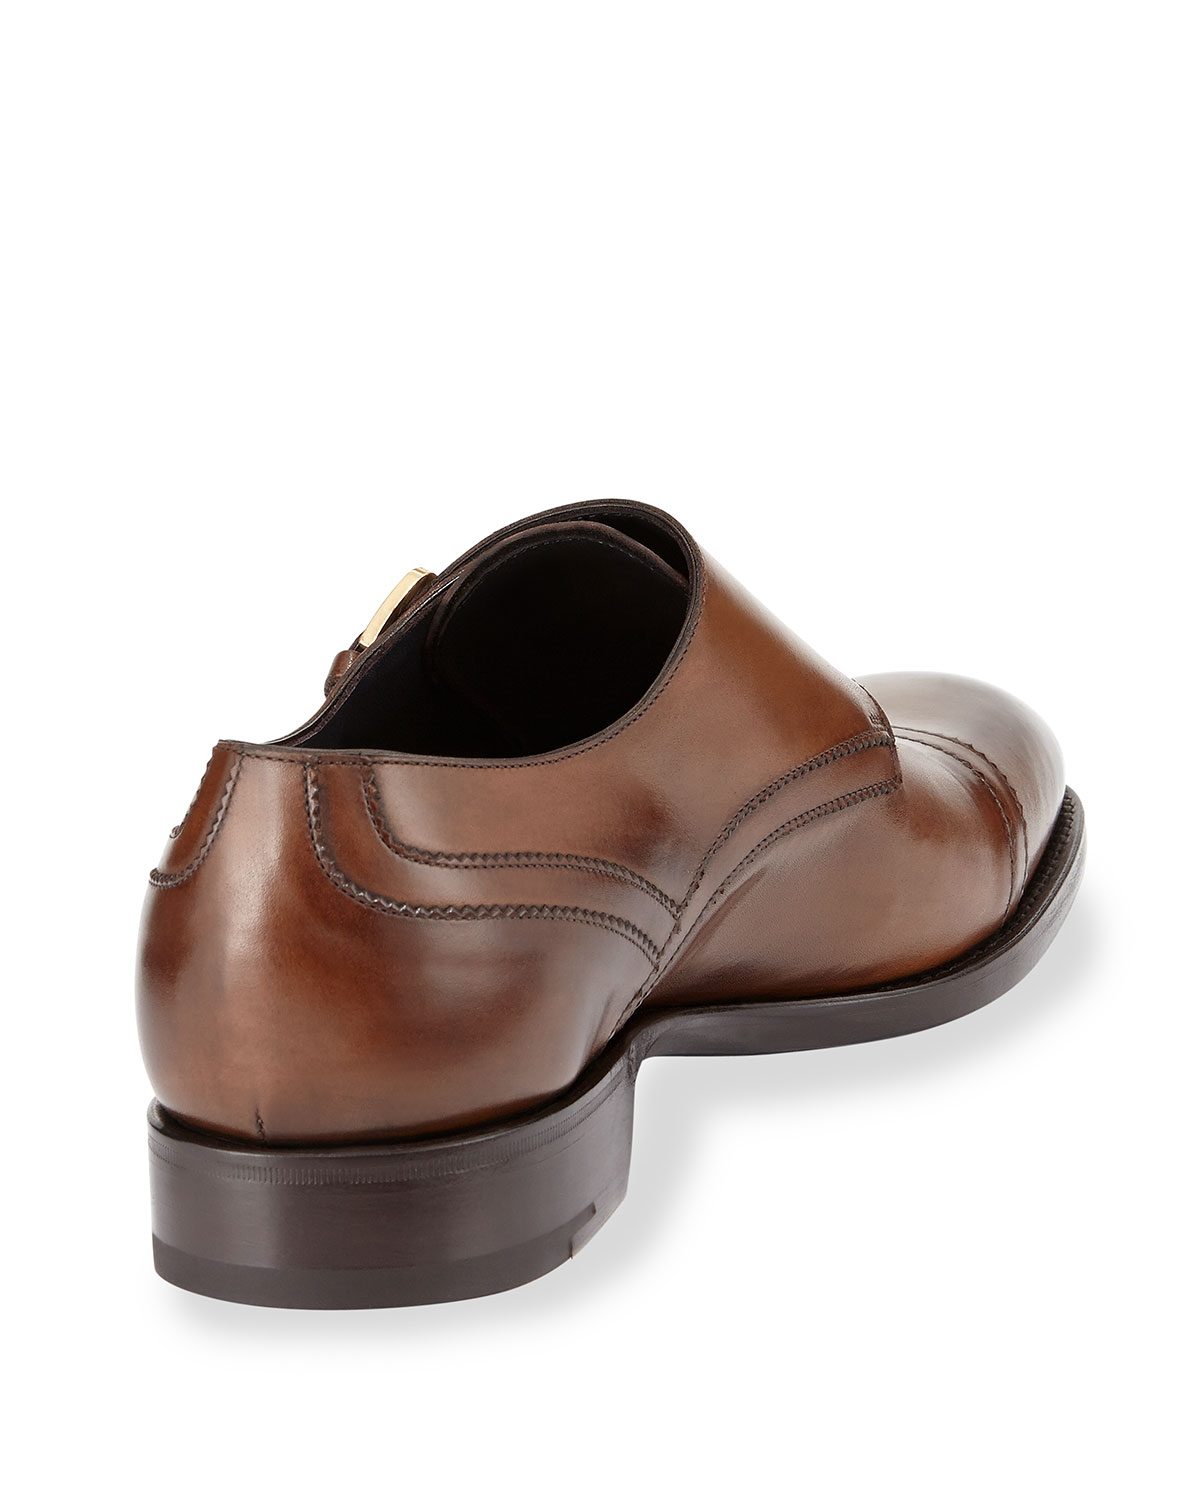 Zegna Shoes Review